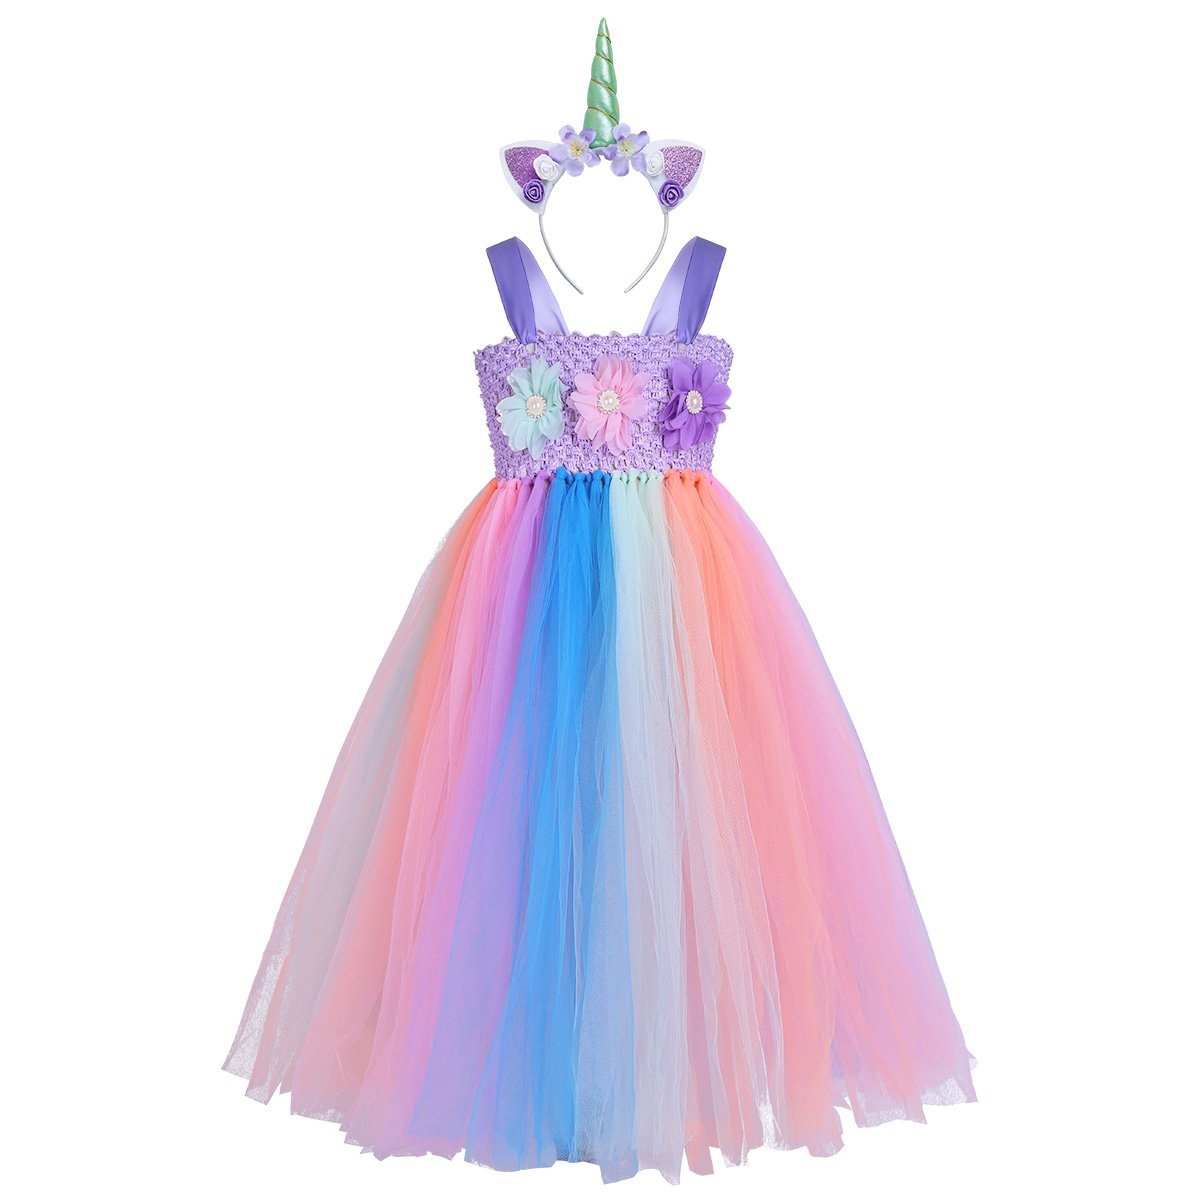 739ce9d2 Amazon.com: FEESHOW Kids Girls Halloween Princess Tutu Fancy Dress up  Costumes Cosplay Party Outfits with Headband: Clothing